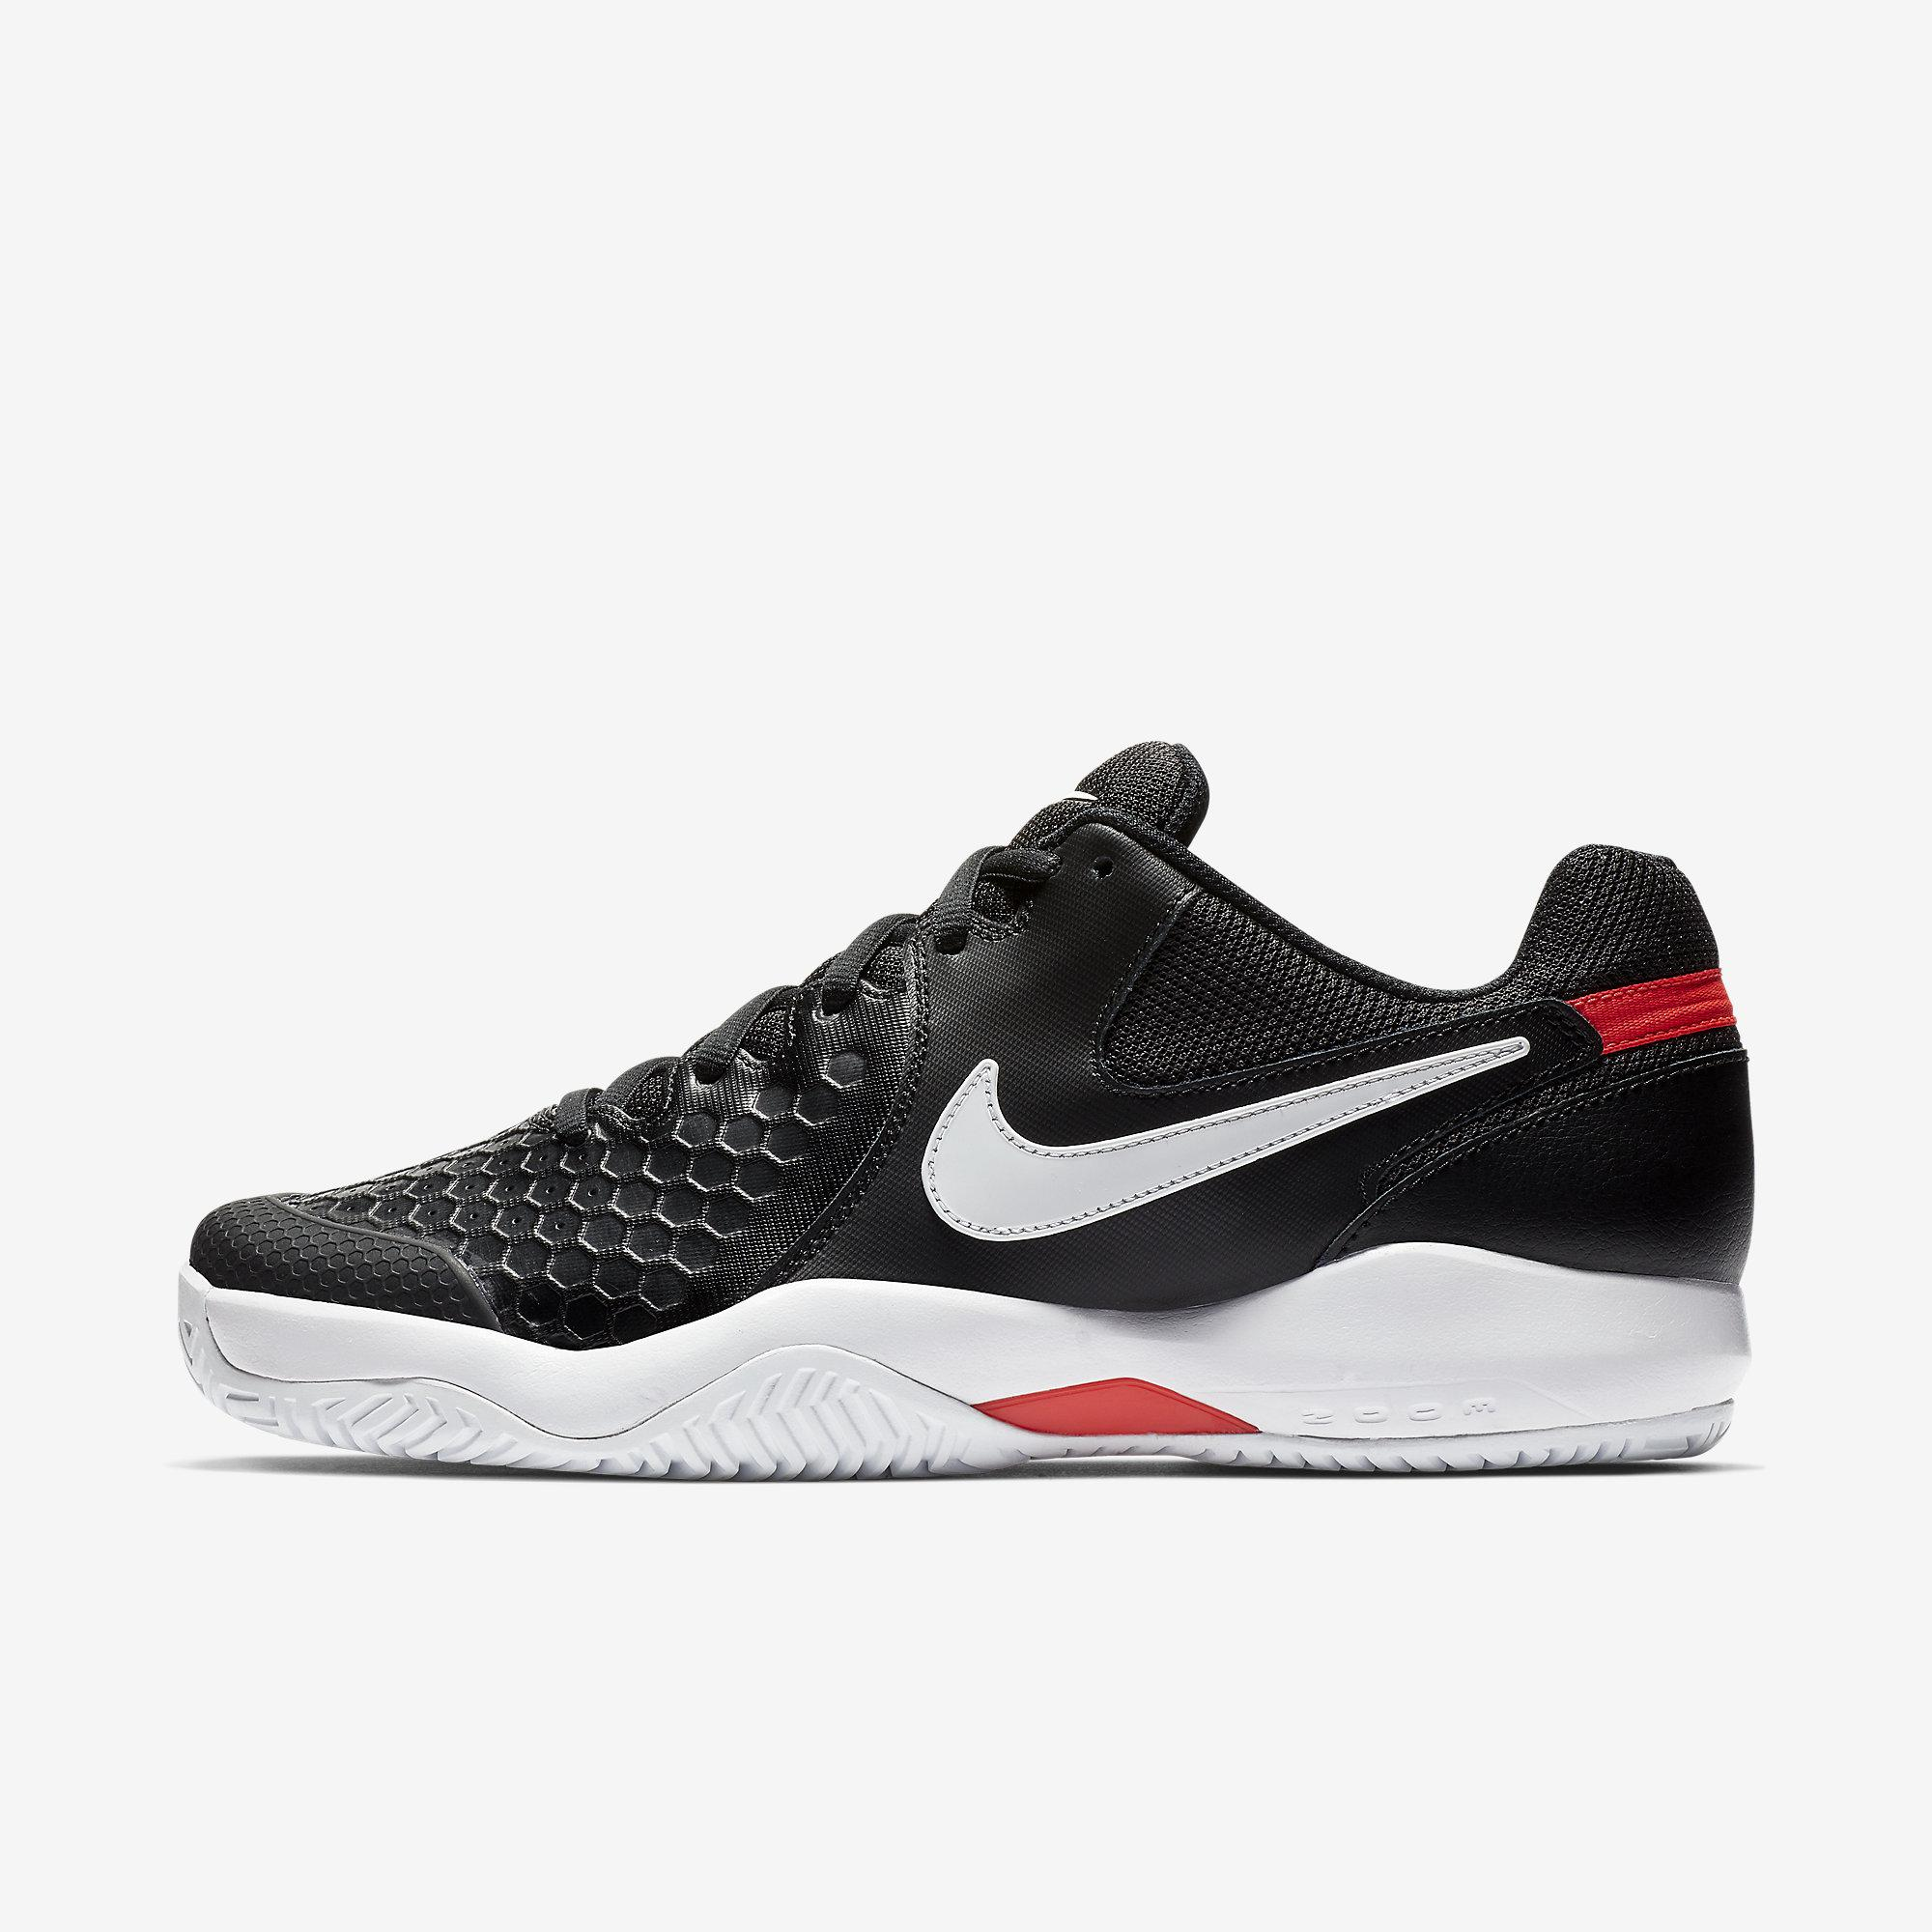 Nike Mens Air Zoom Resistance Tennis Shoes Black